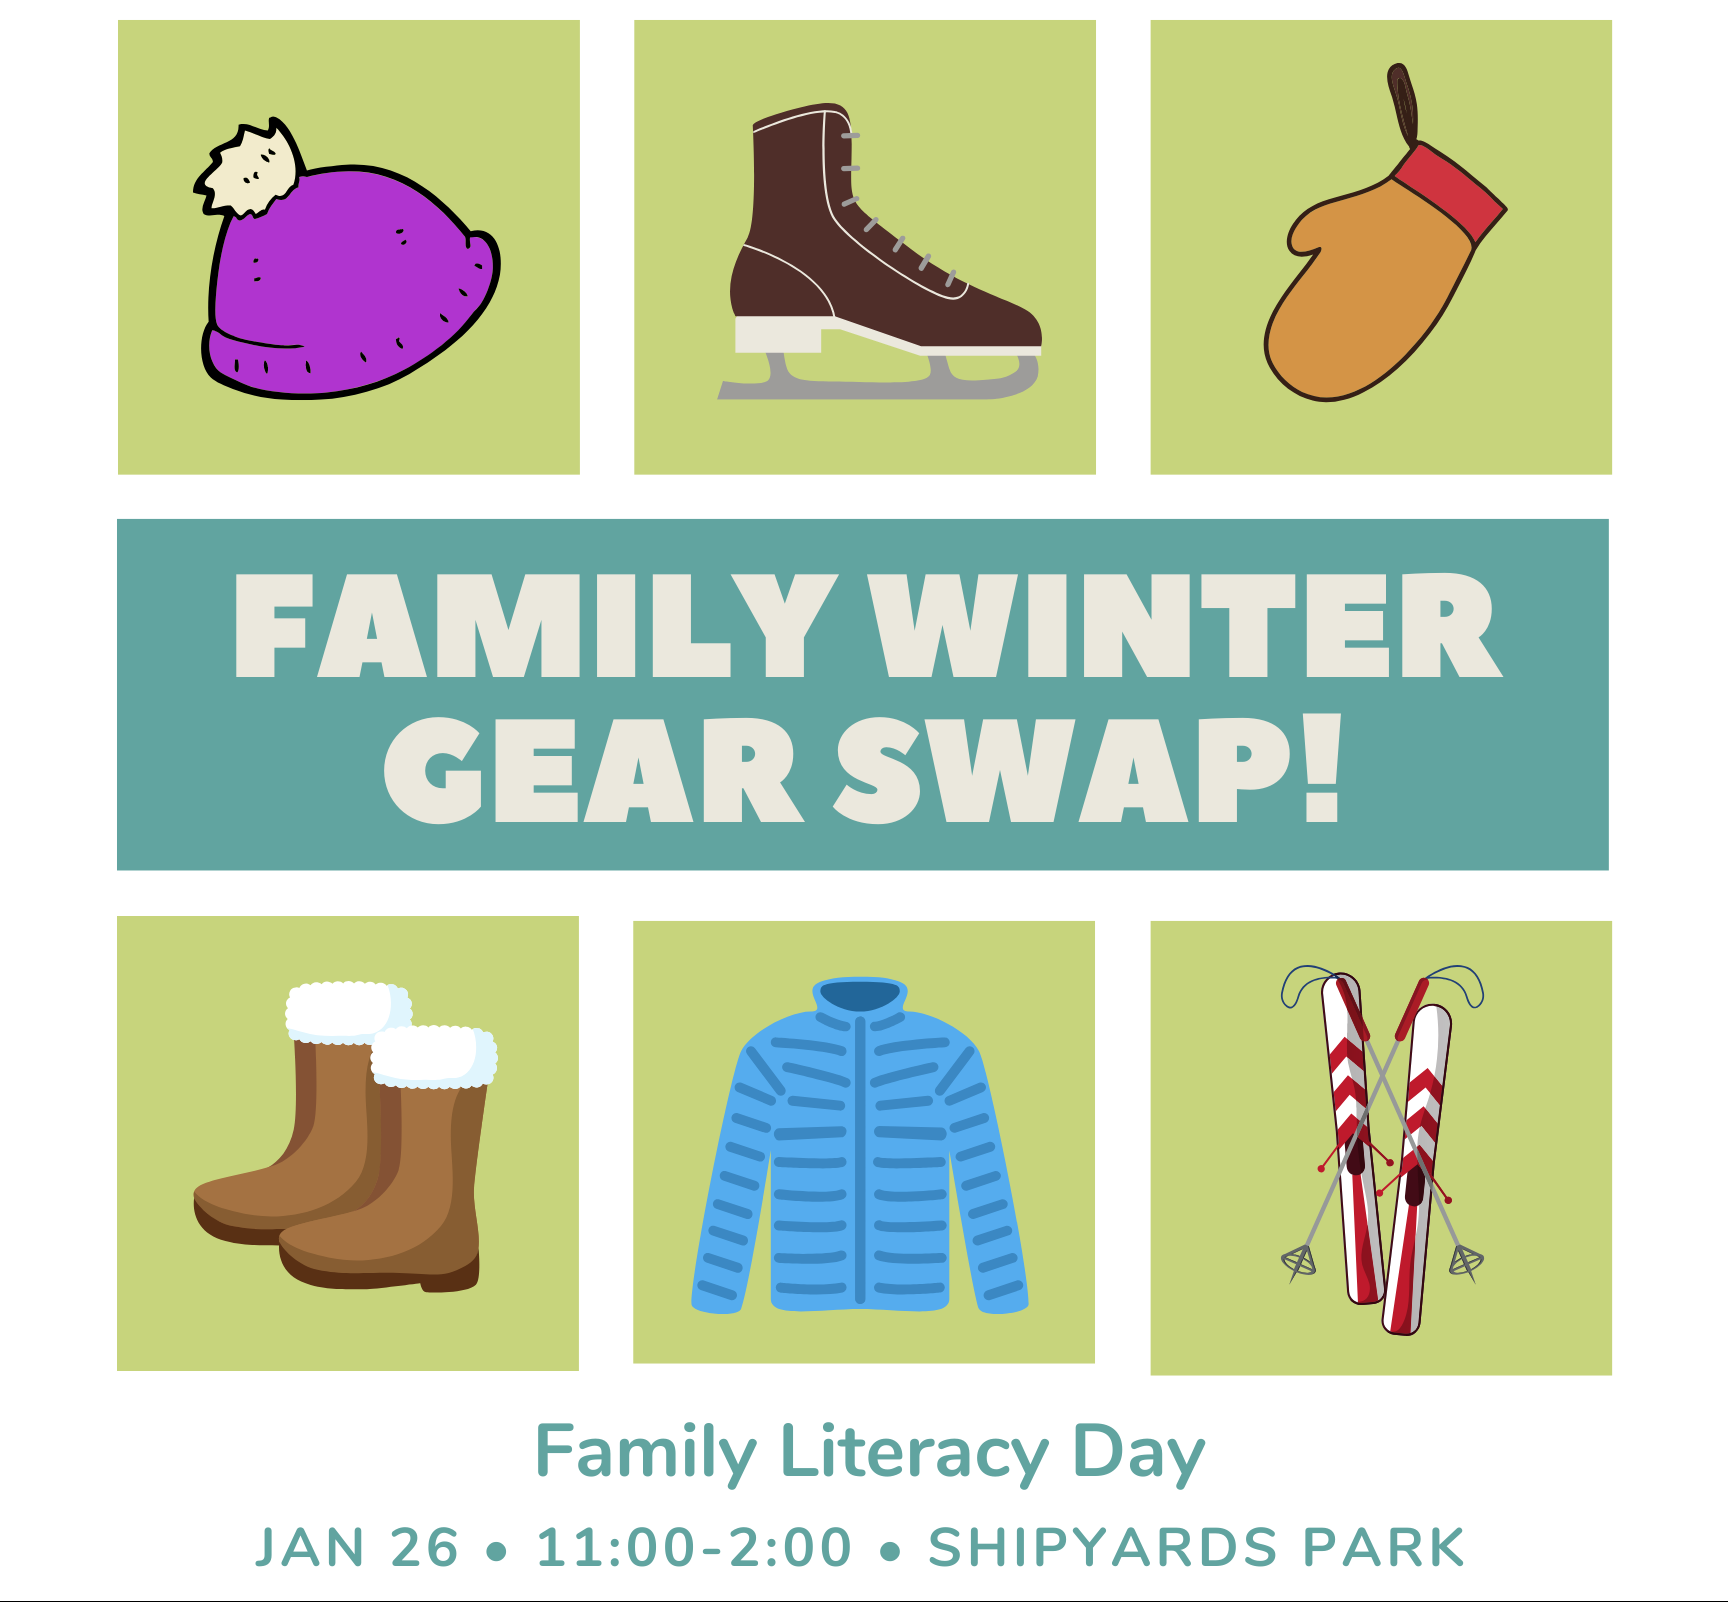 Family Winter Gear Swap!